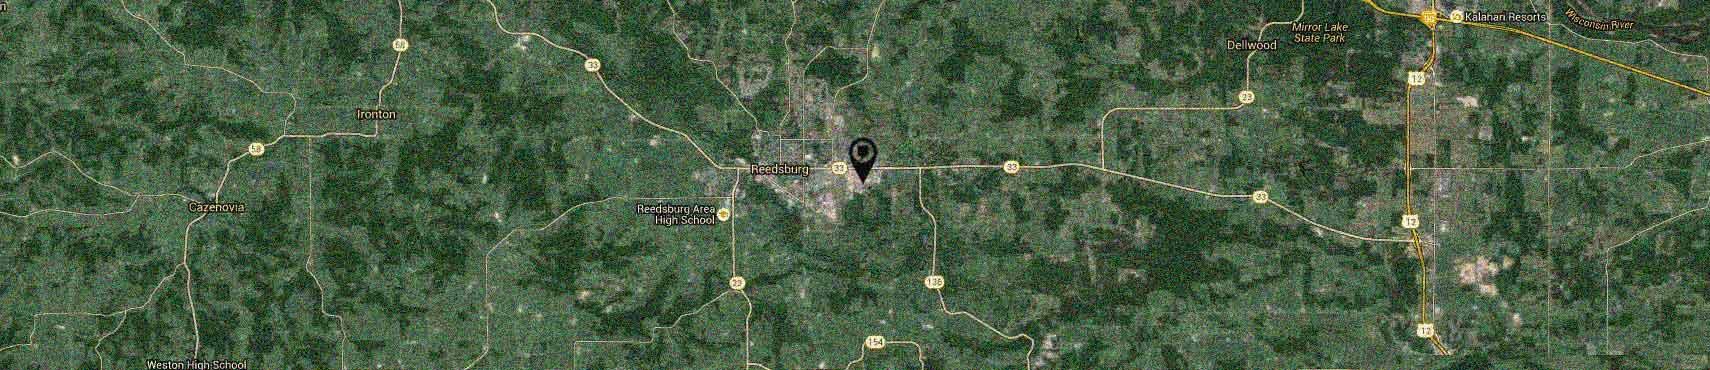 Map of Reedsburg WI USA Area